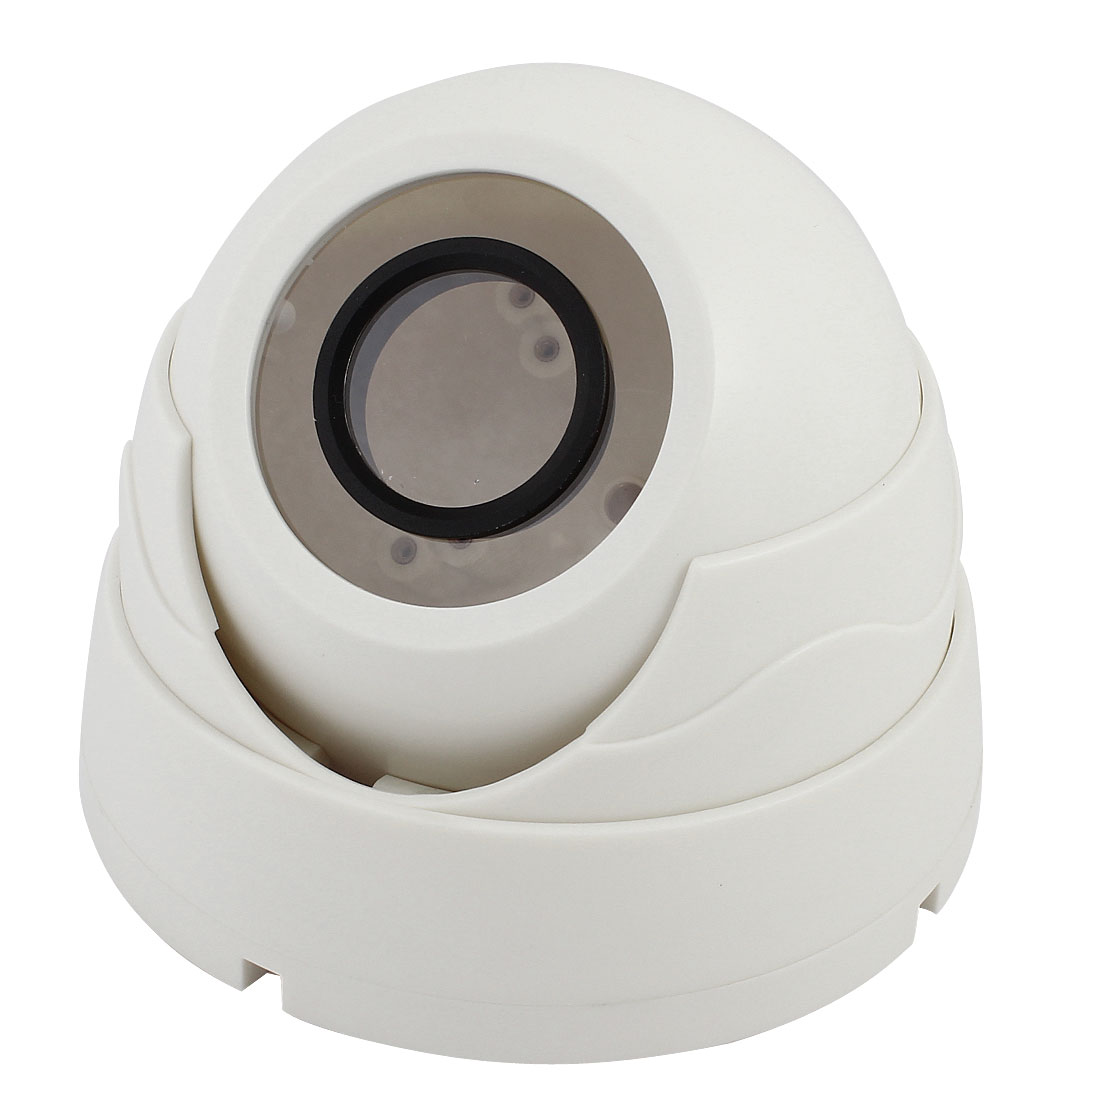 Wall Ceiling Mount Security CCTV Camera Dome Enclosure Housing Case 12cm